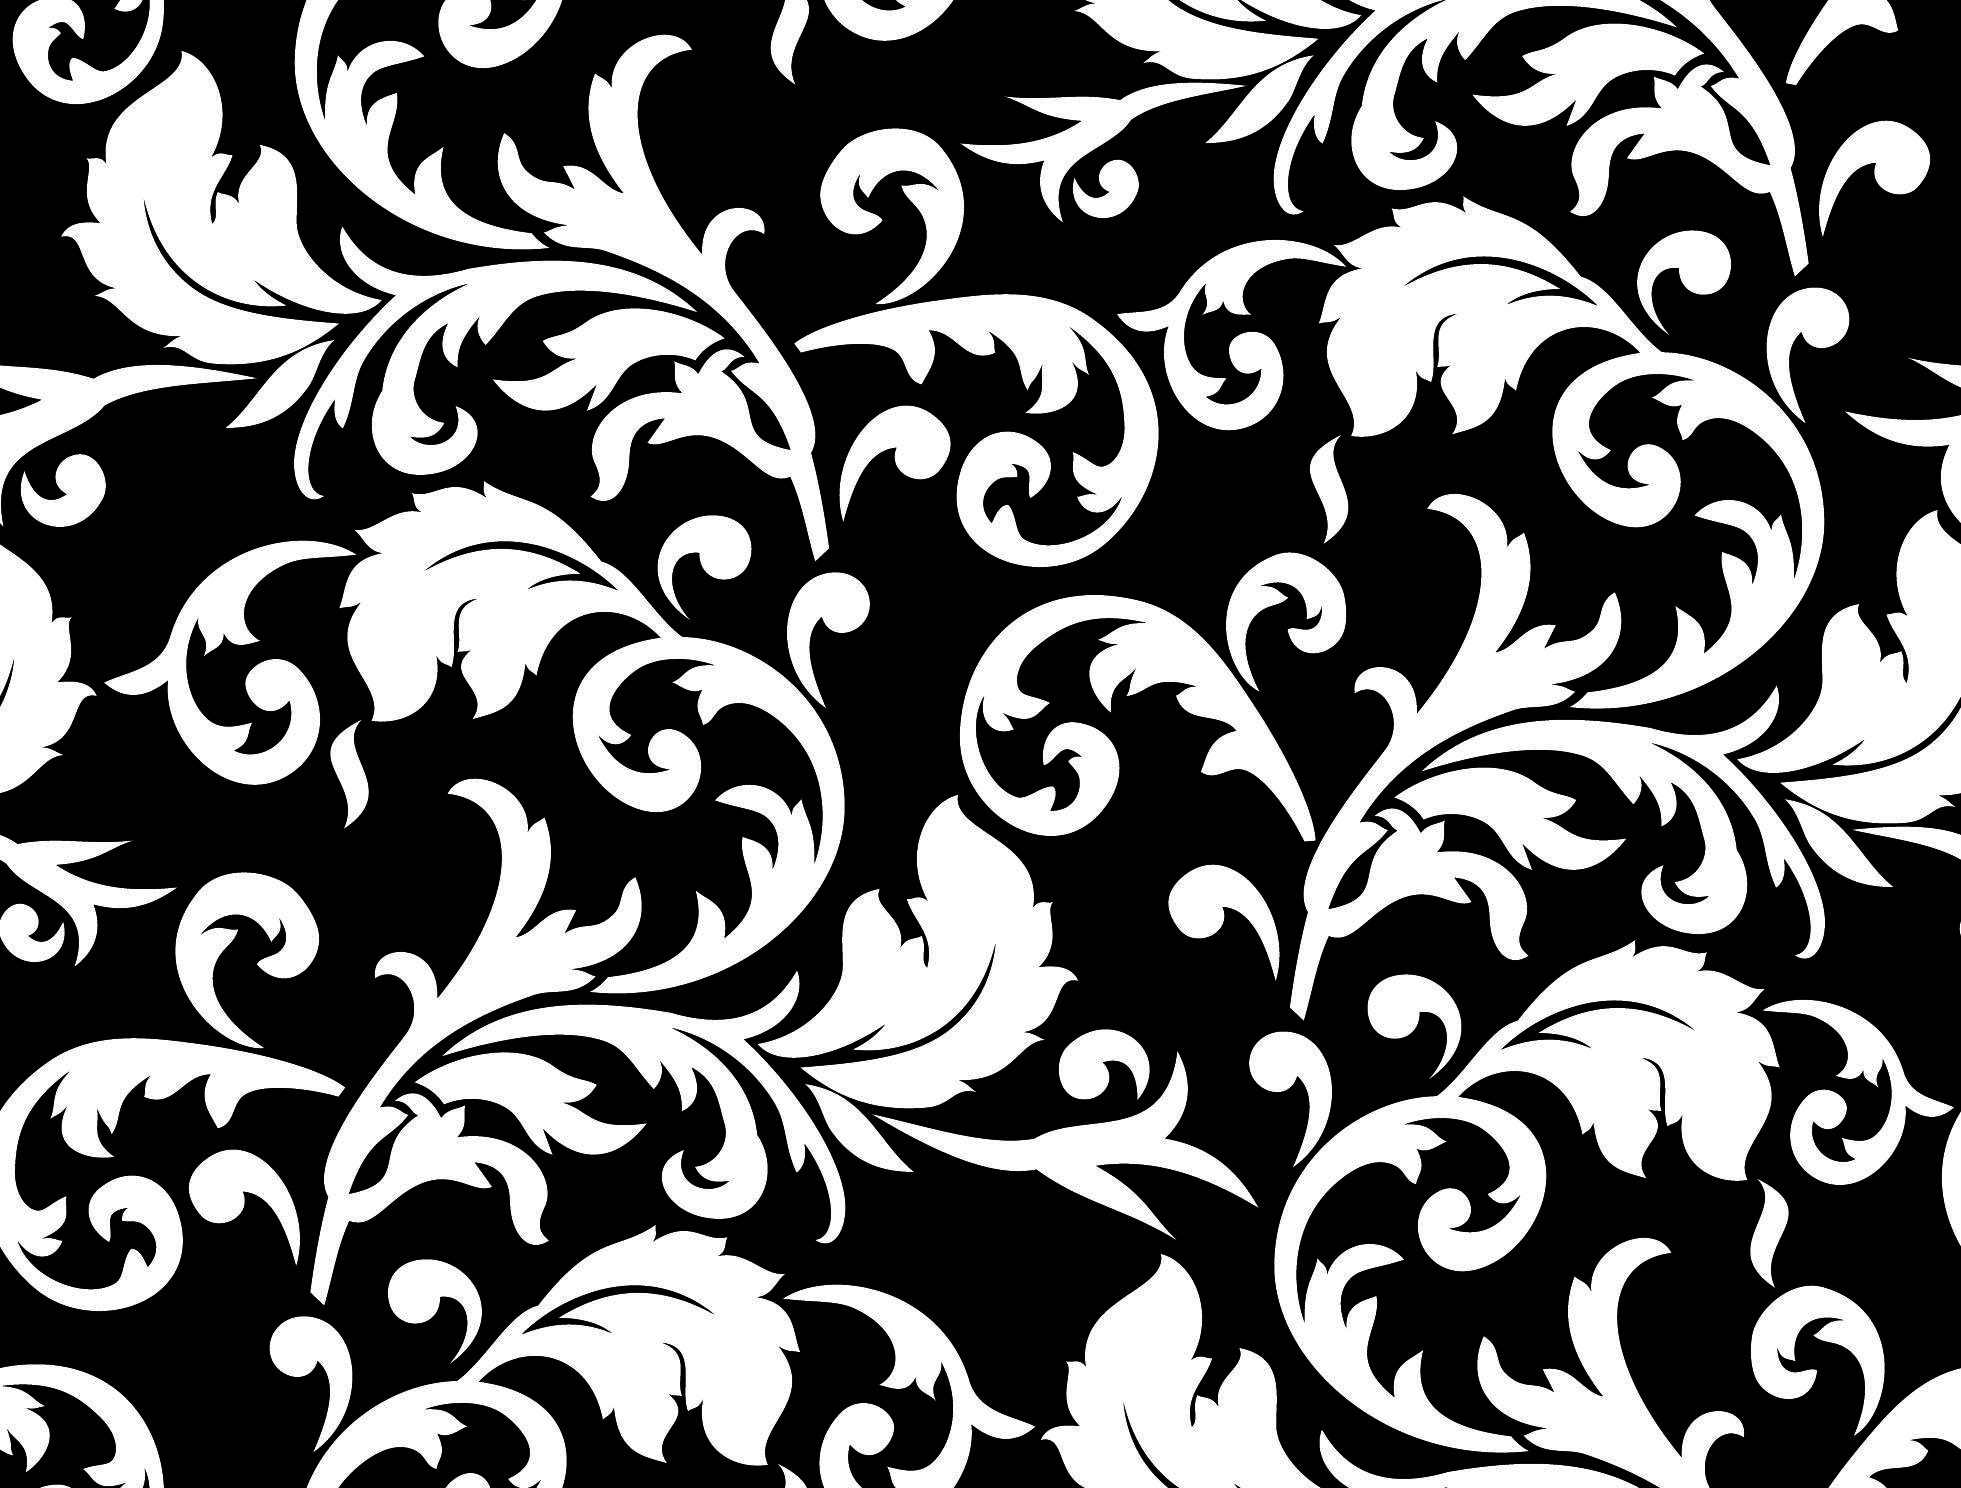 Classical traditional floral pattern background 03 vector